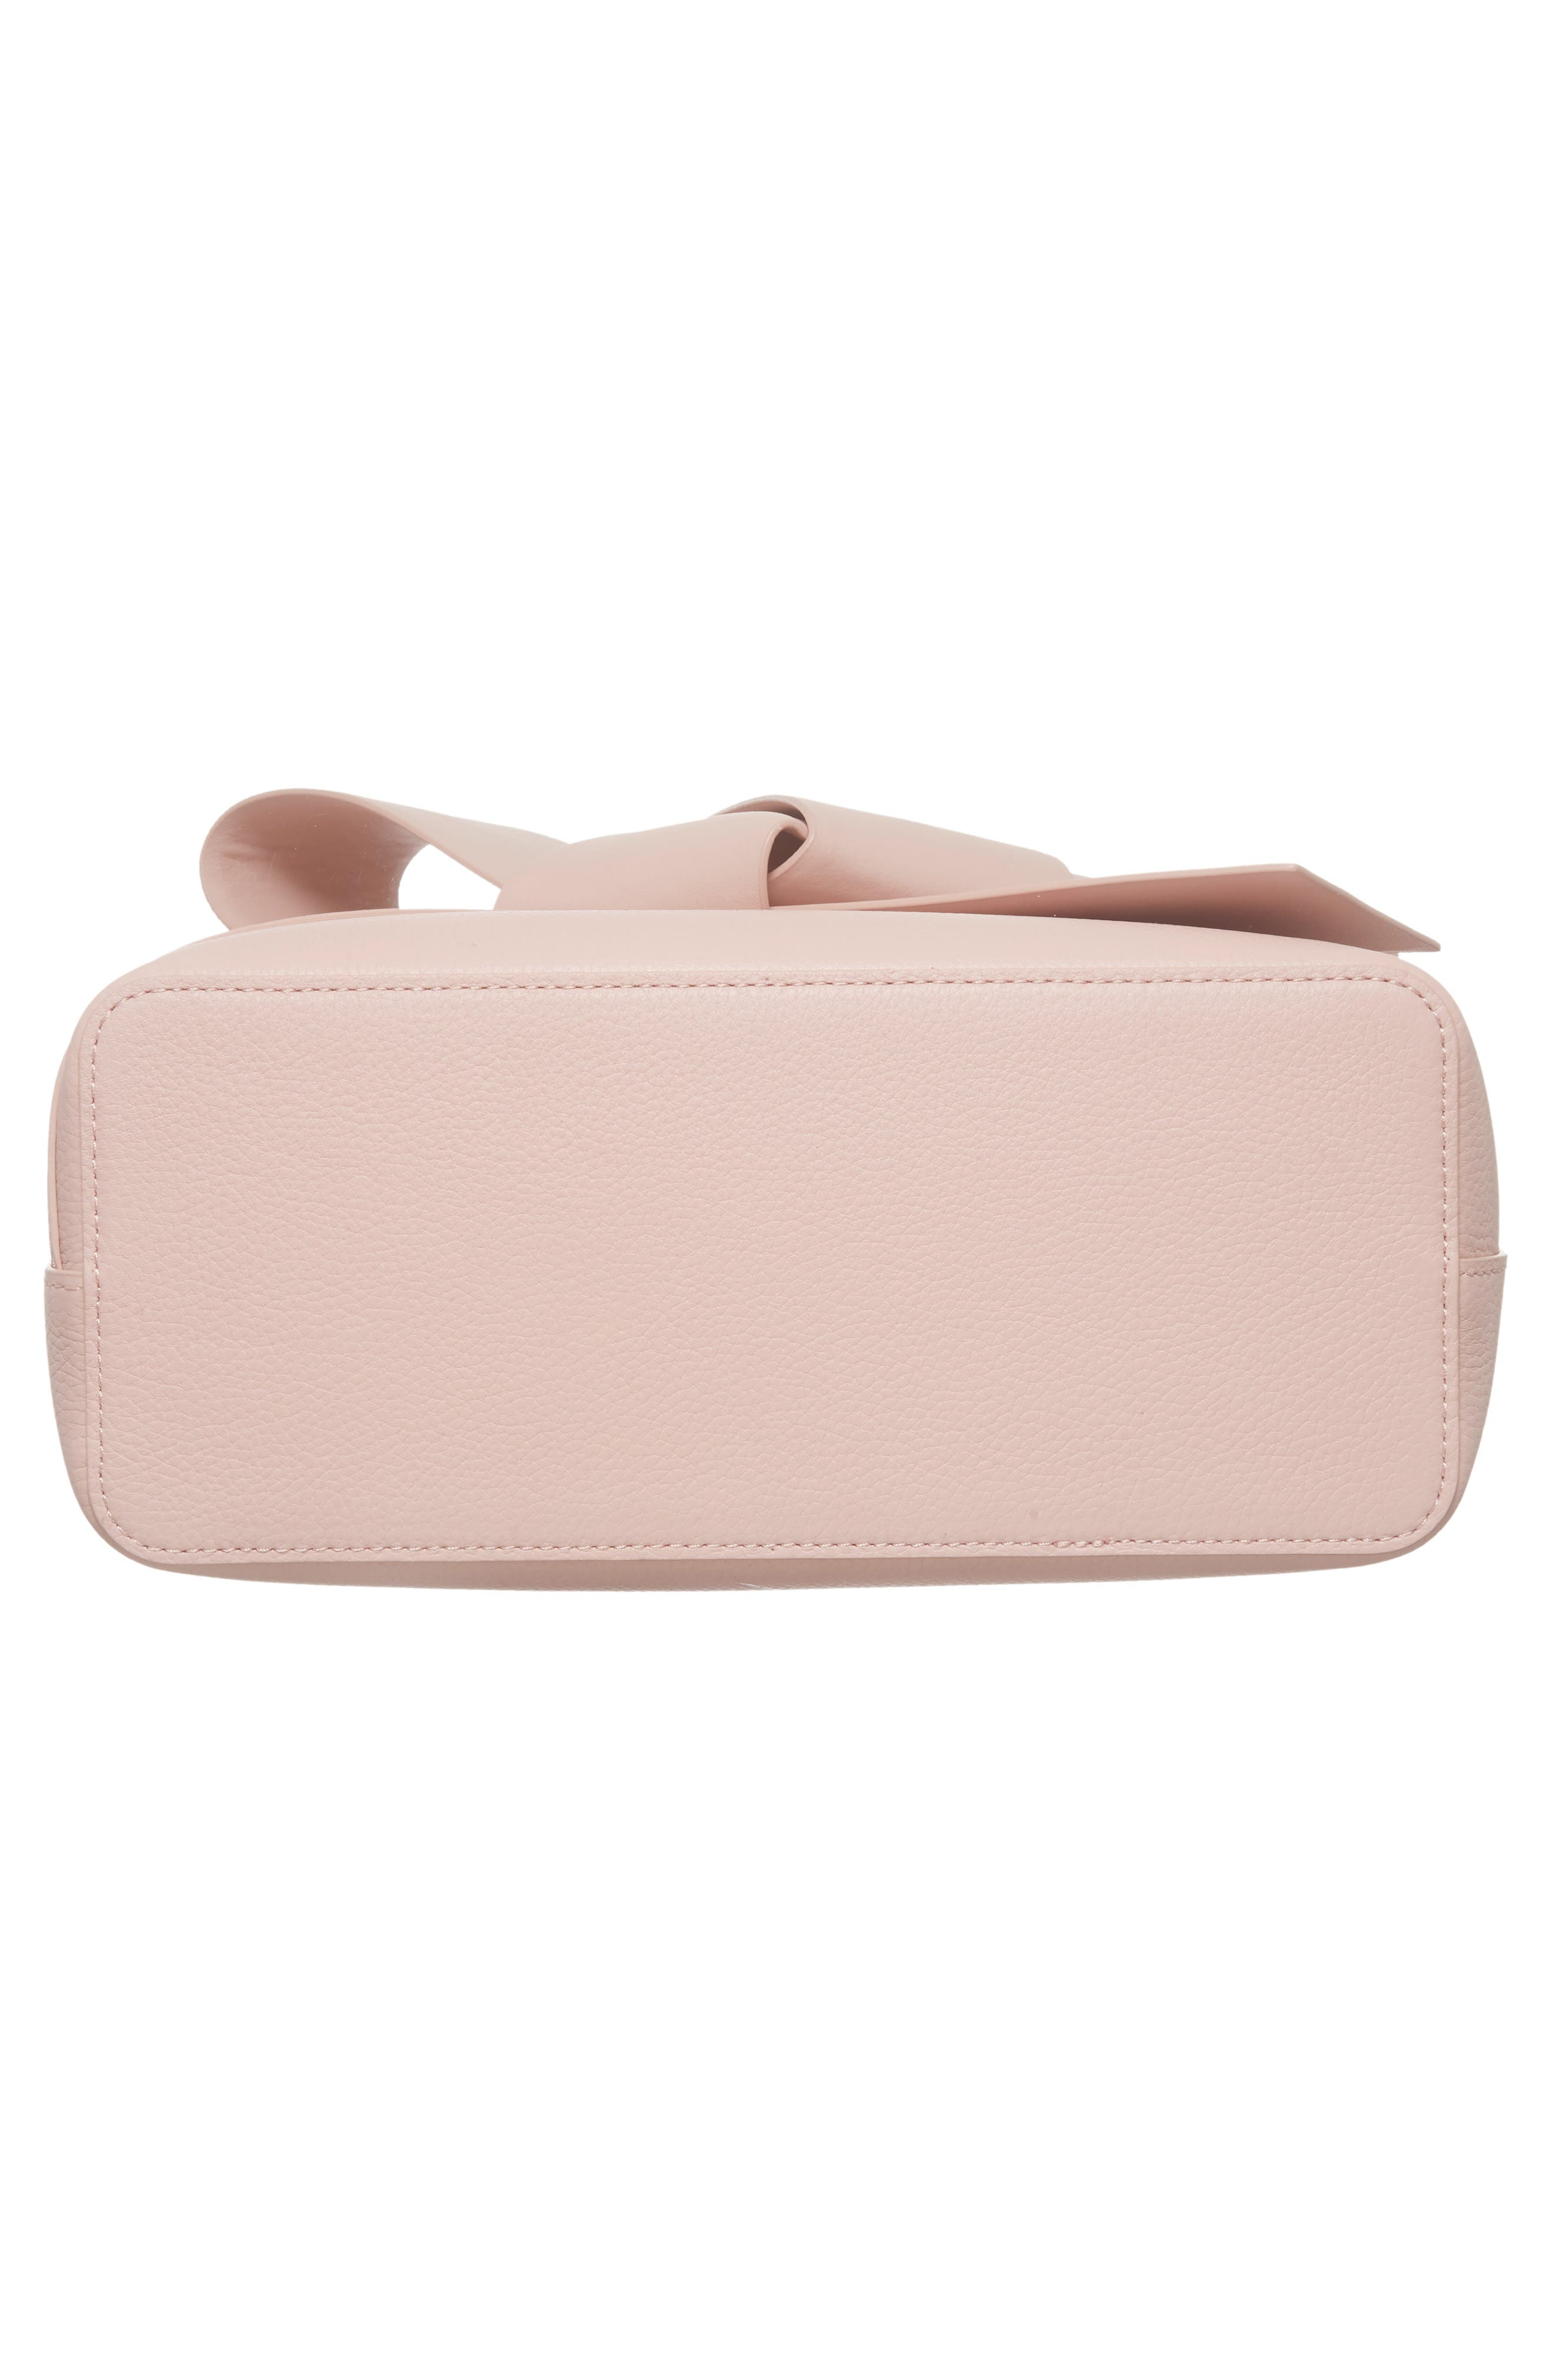 Giant Knot Leather Shopper,                             Alternate thumbnail 6, color,                             Nude Pink